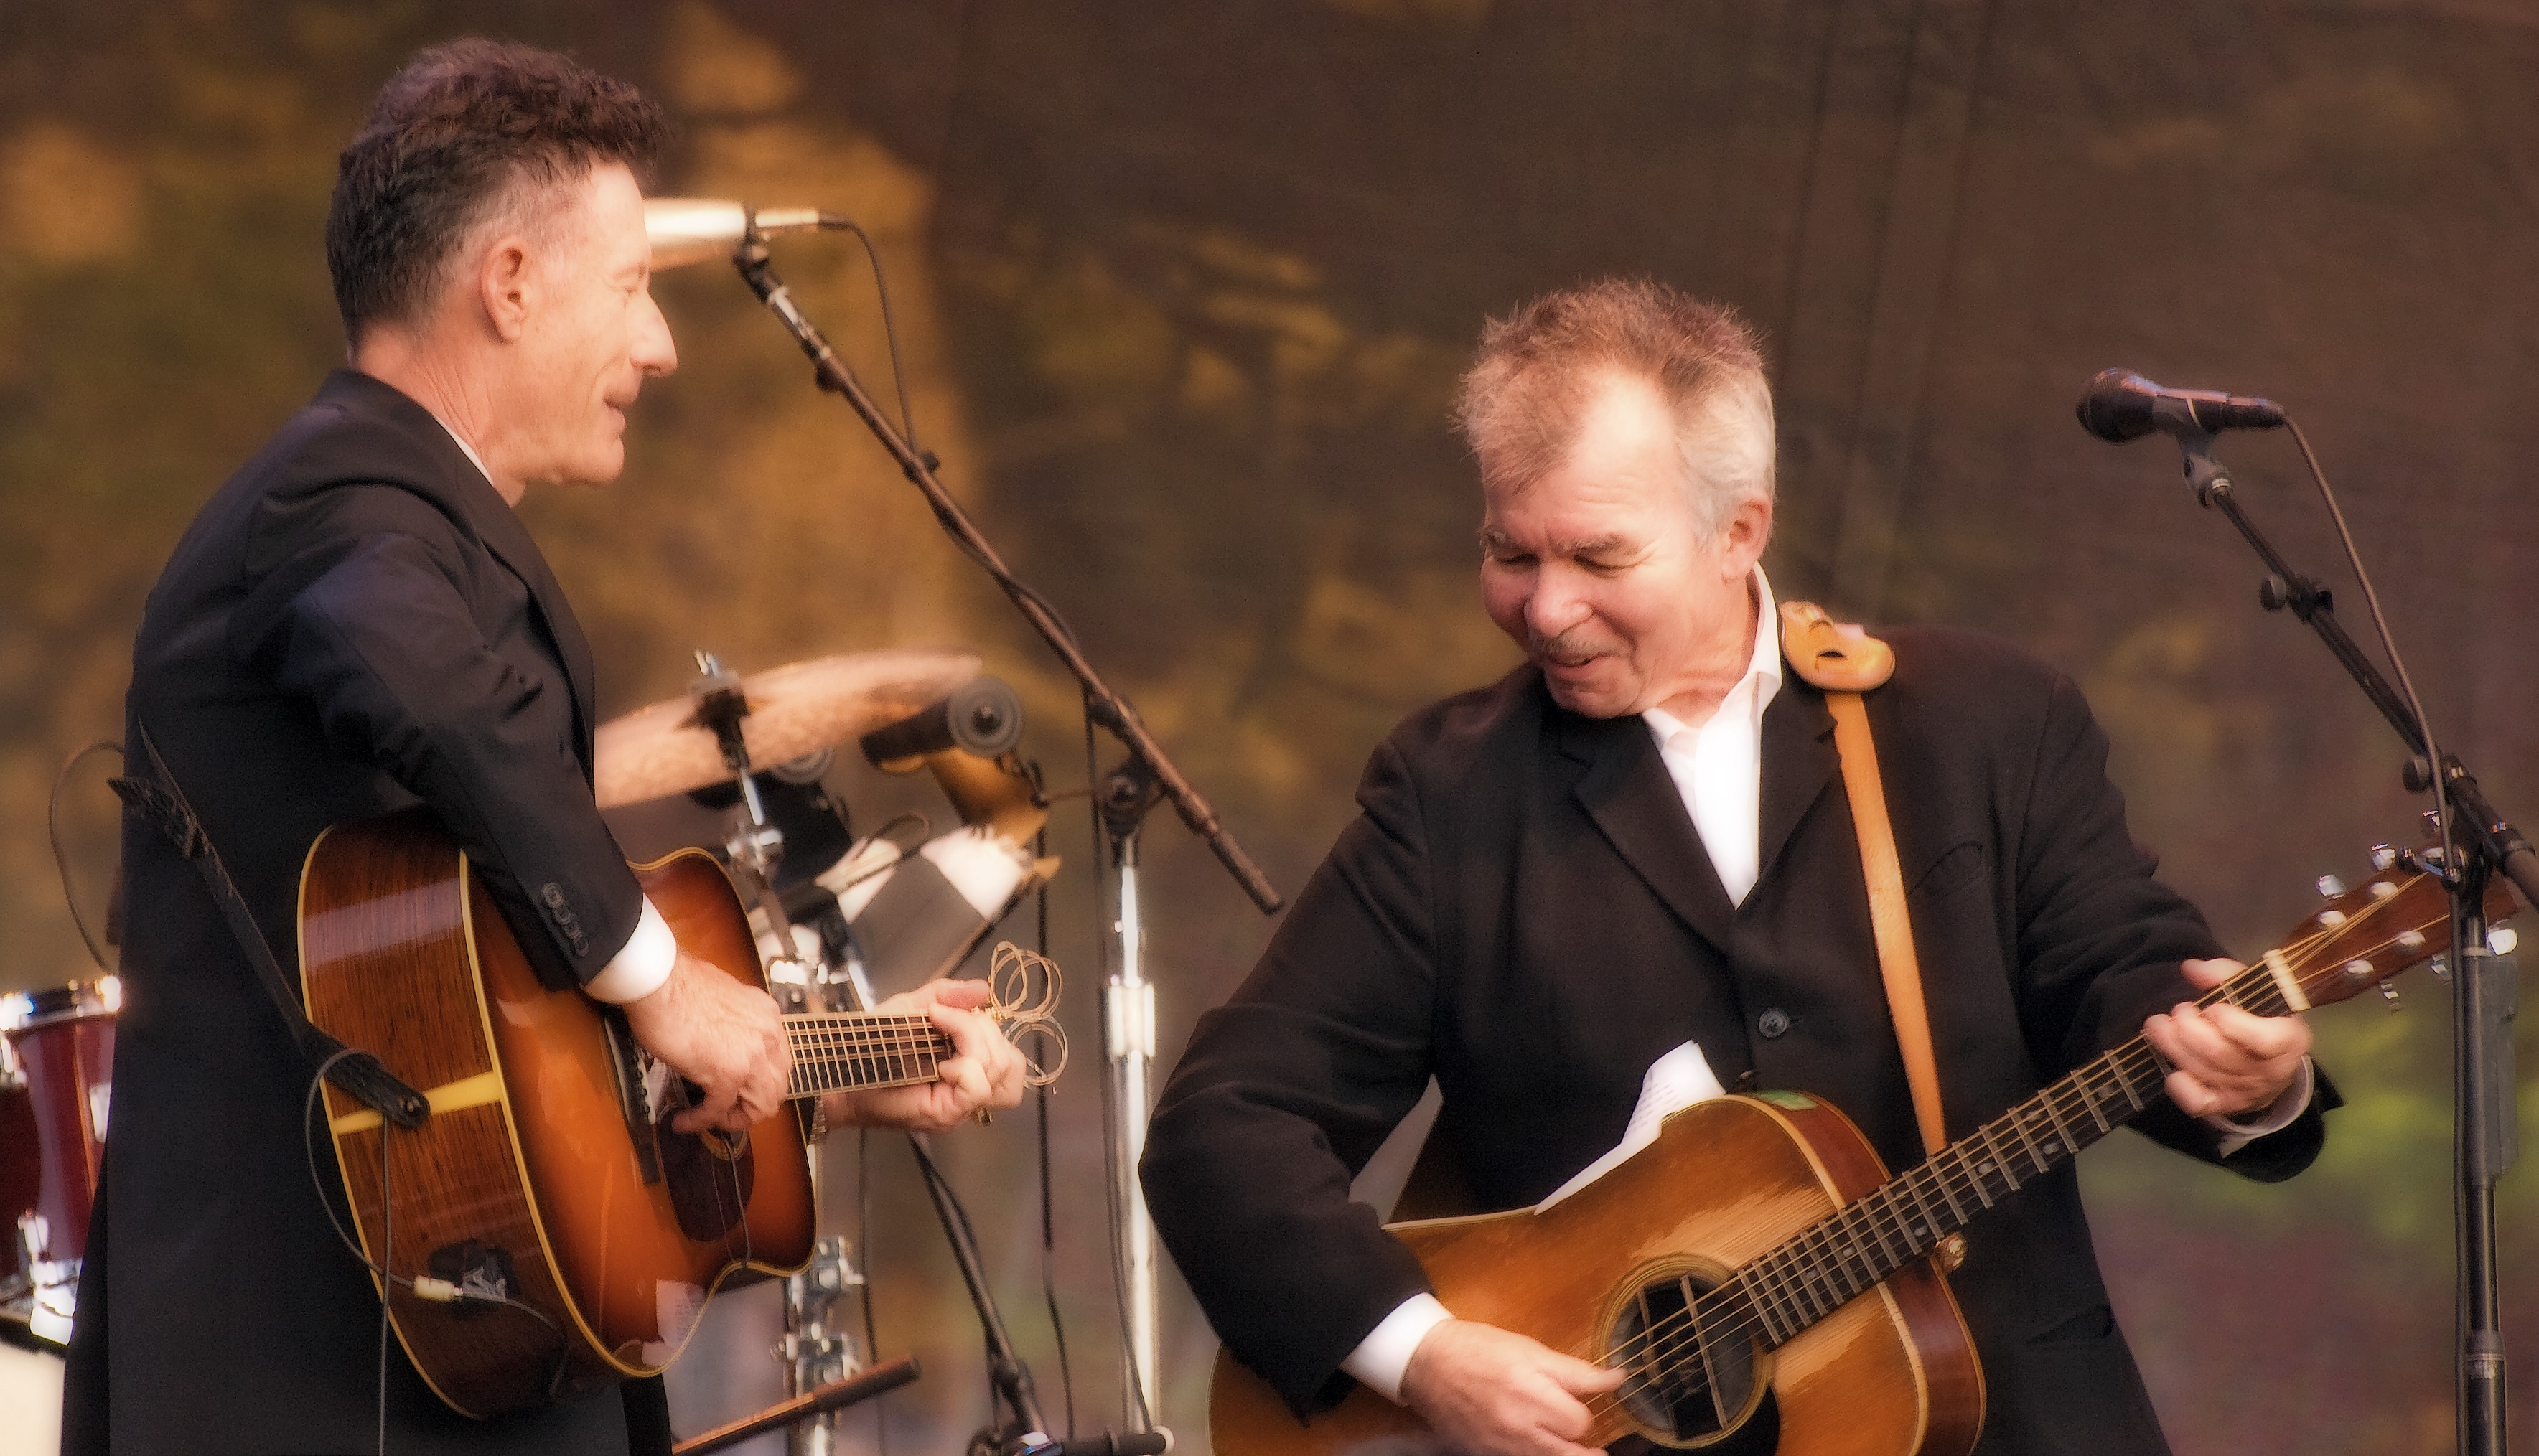 Photograph of John Prine and Lyle Lovett in concert.